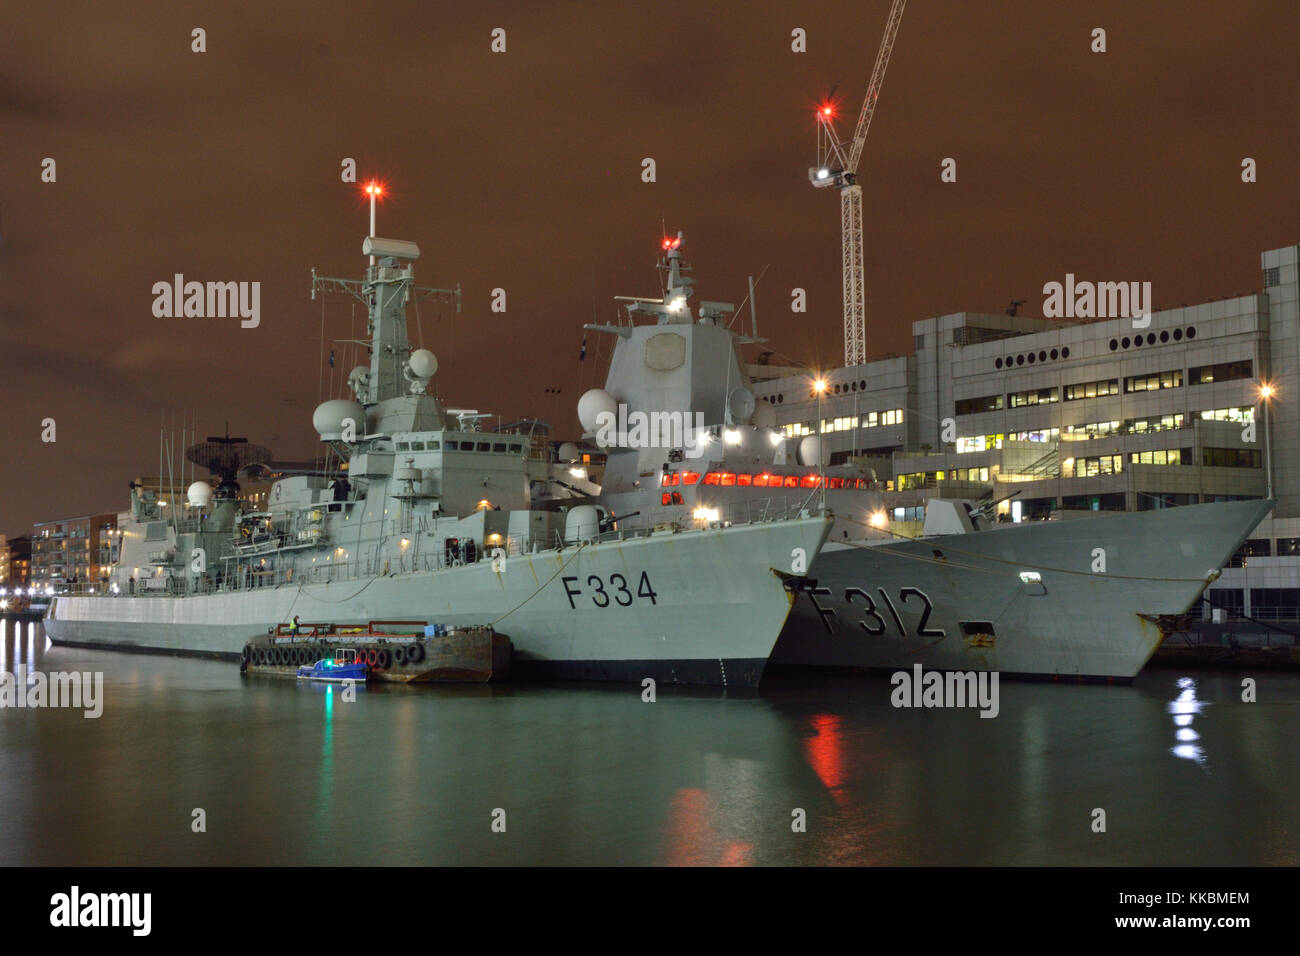 Two Frigates of NATO's SNMG1 paying a port-call to London seen moored in West India Dock in Canary Wharf, London - Stock Image